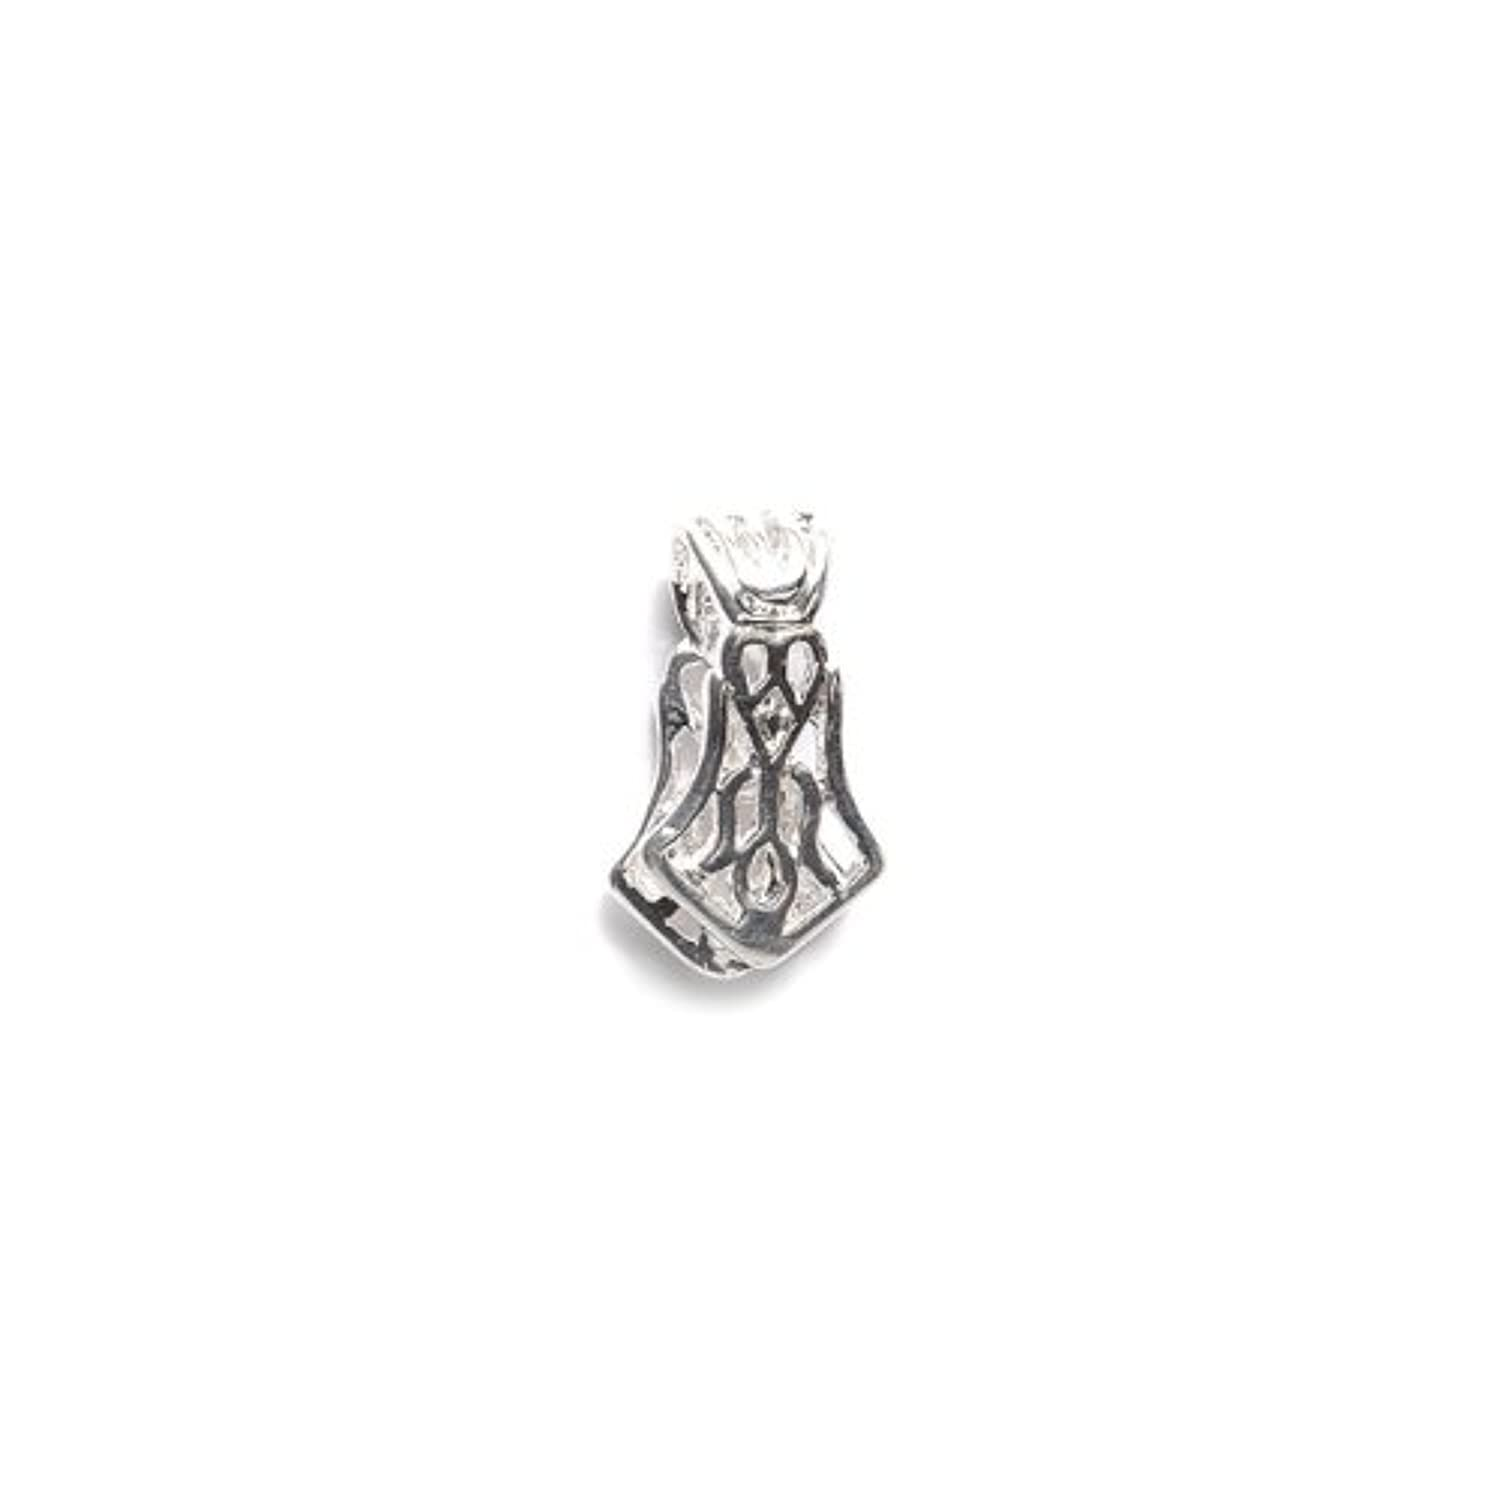 Shipwreck Beads Metal Pinch Bail with Scroll Work, 10 by 20 mm, Metallic, Silver, 4-Pack